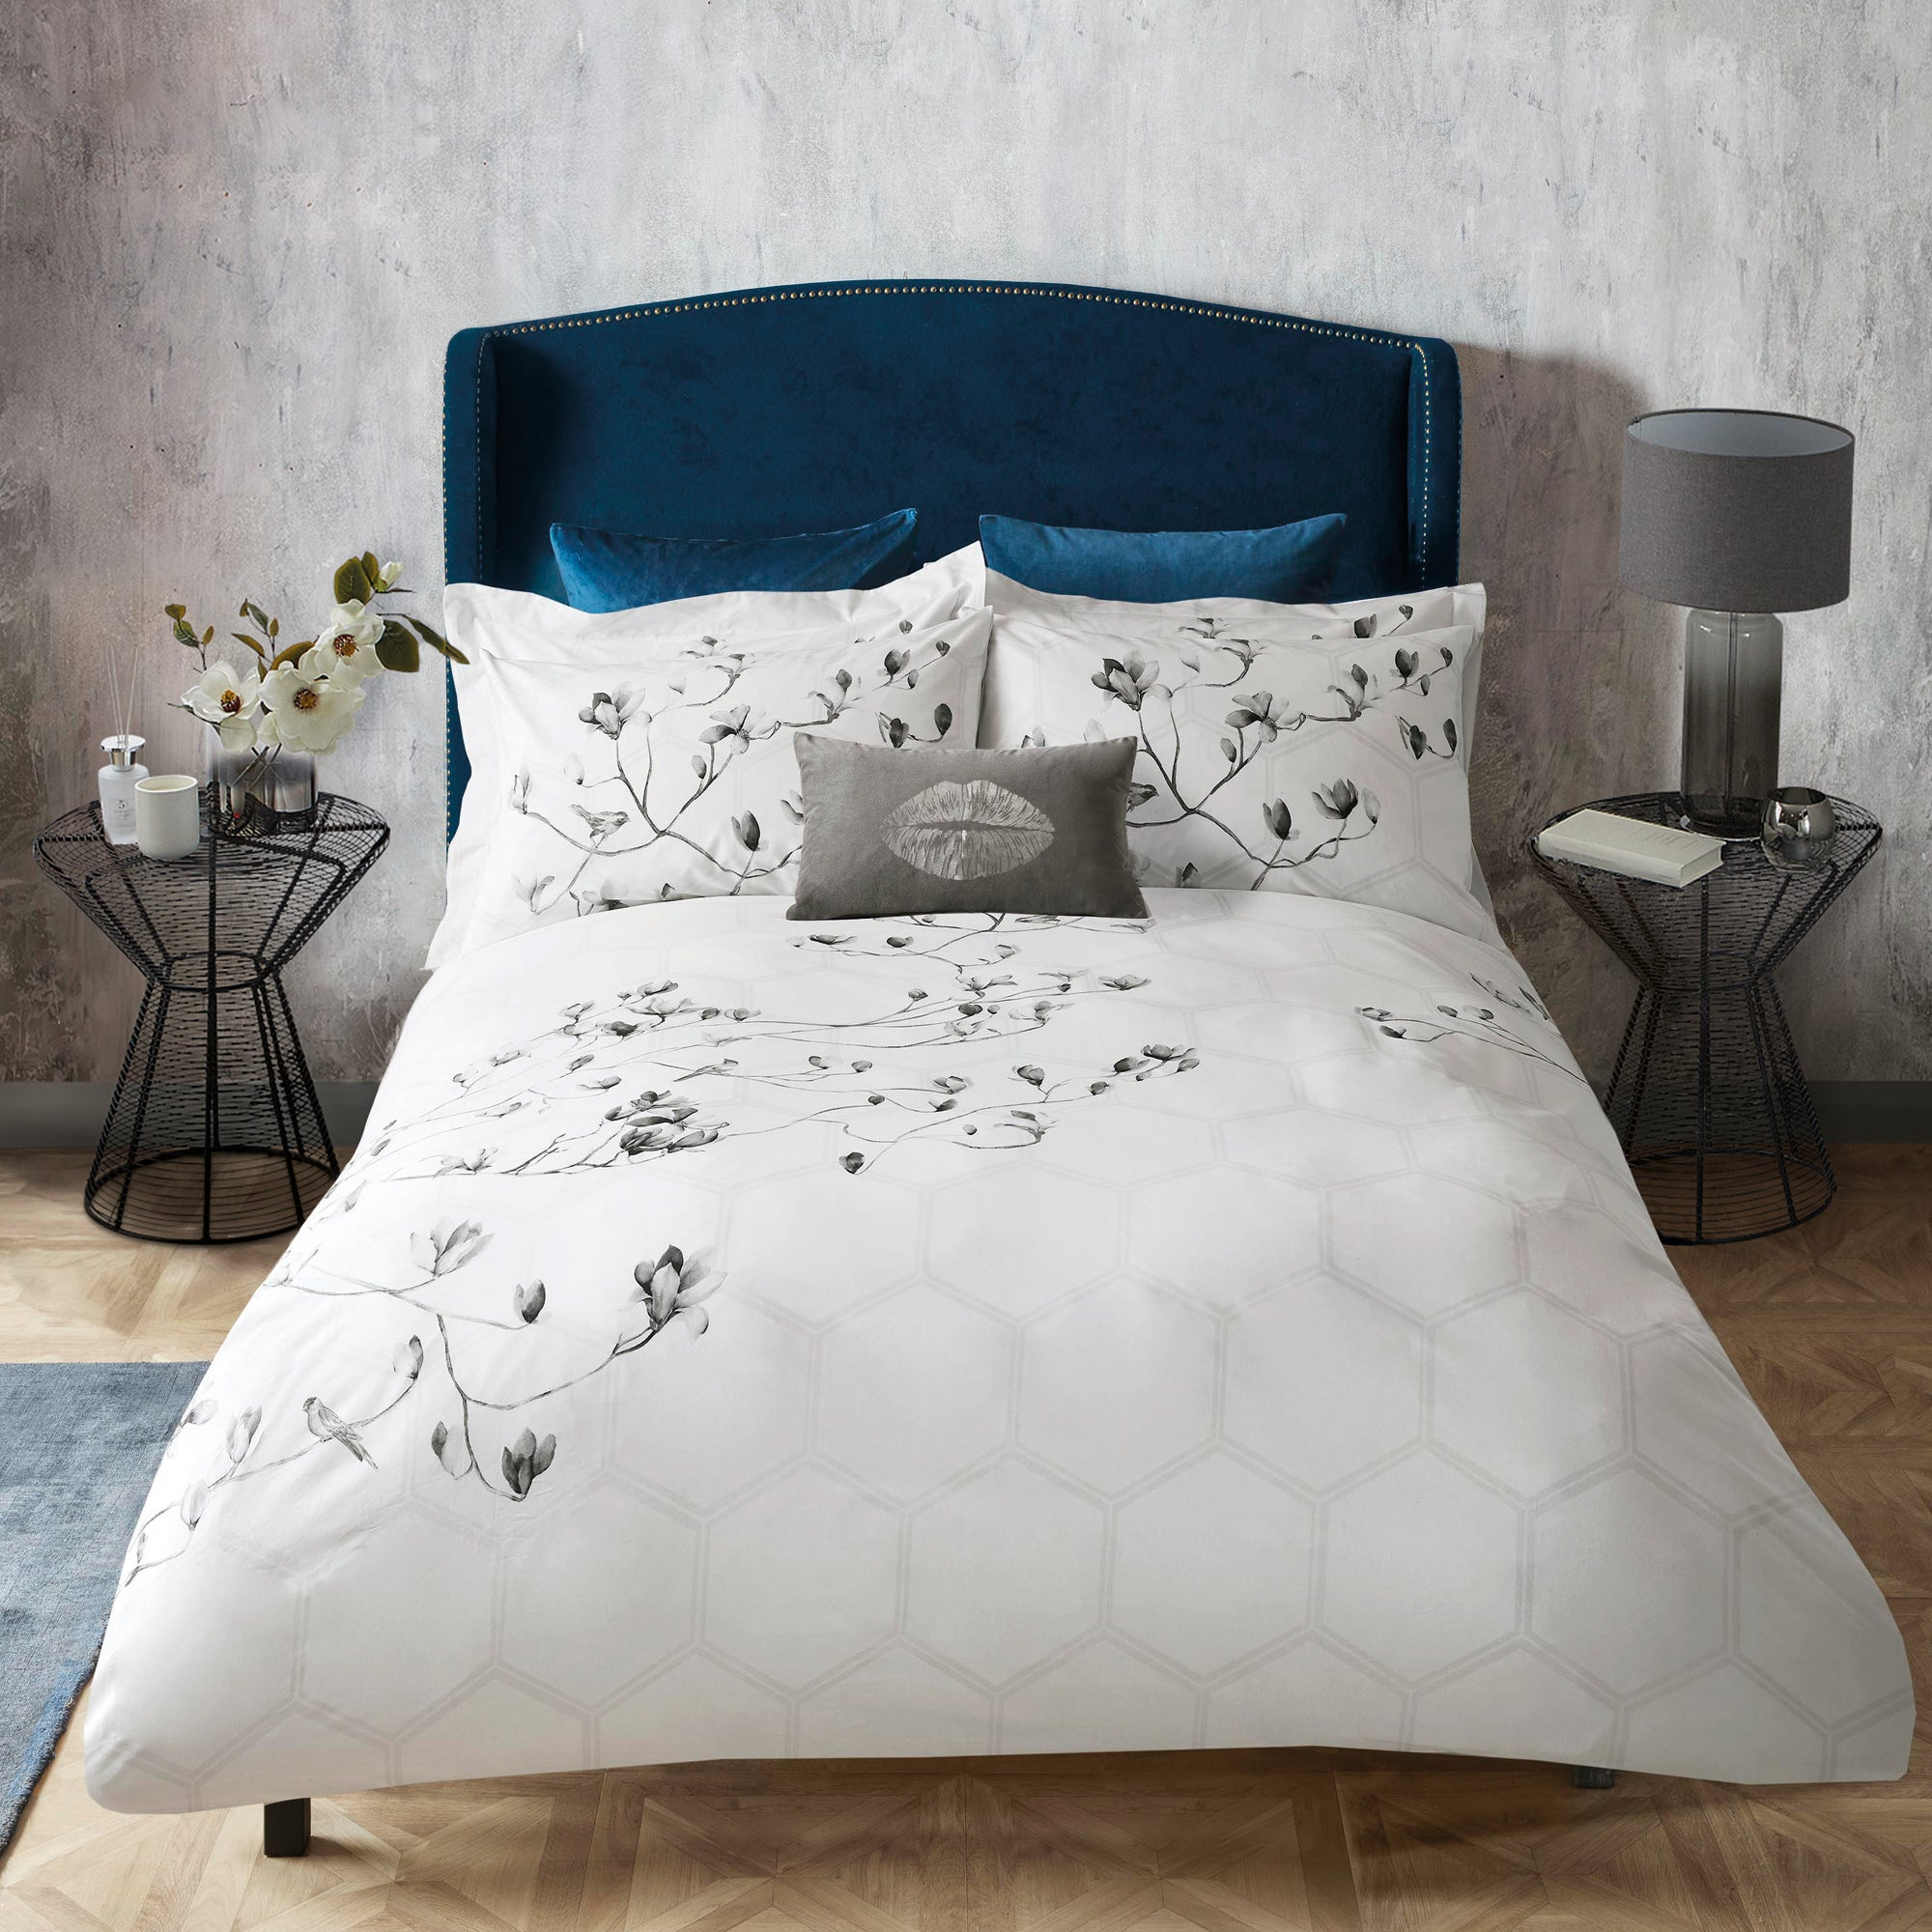 Photo of Emma willis kyoto garden 100 cotton reversible duvet cover and pillowcase set white and grey